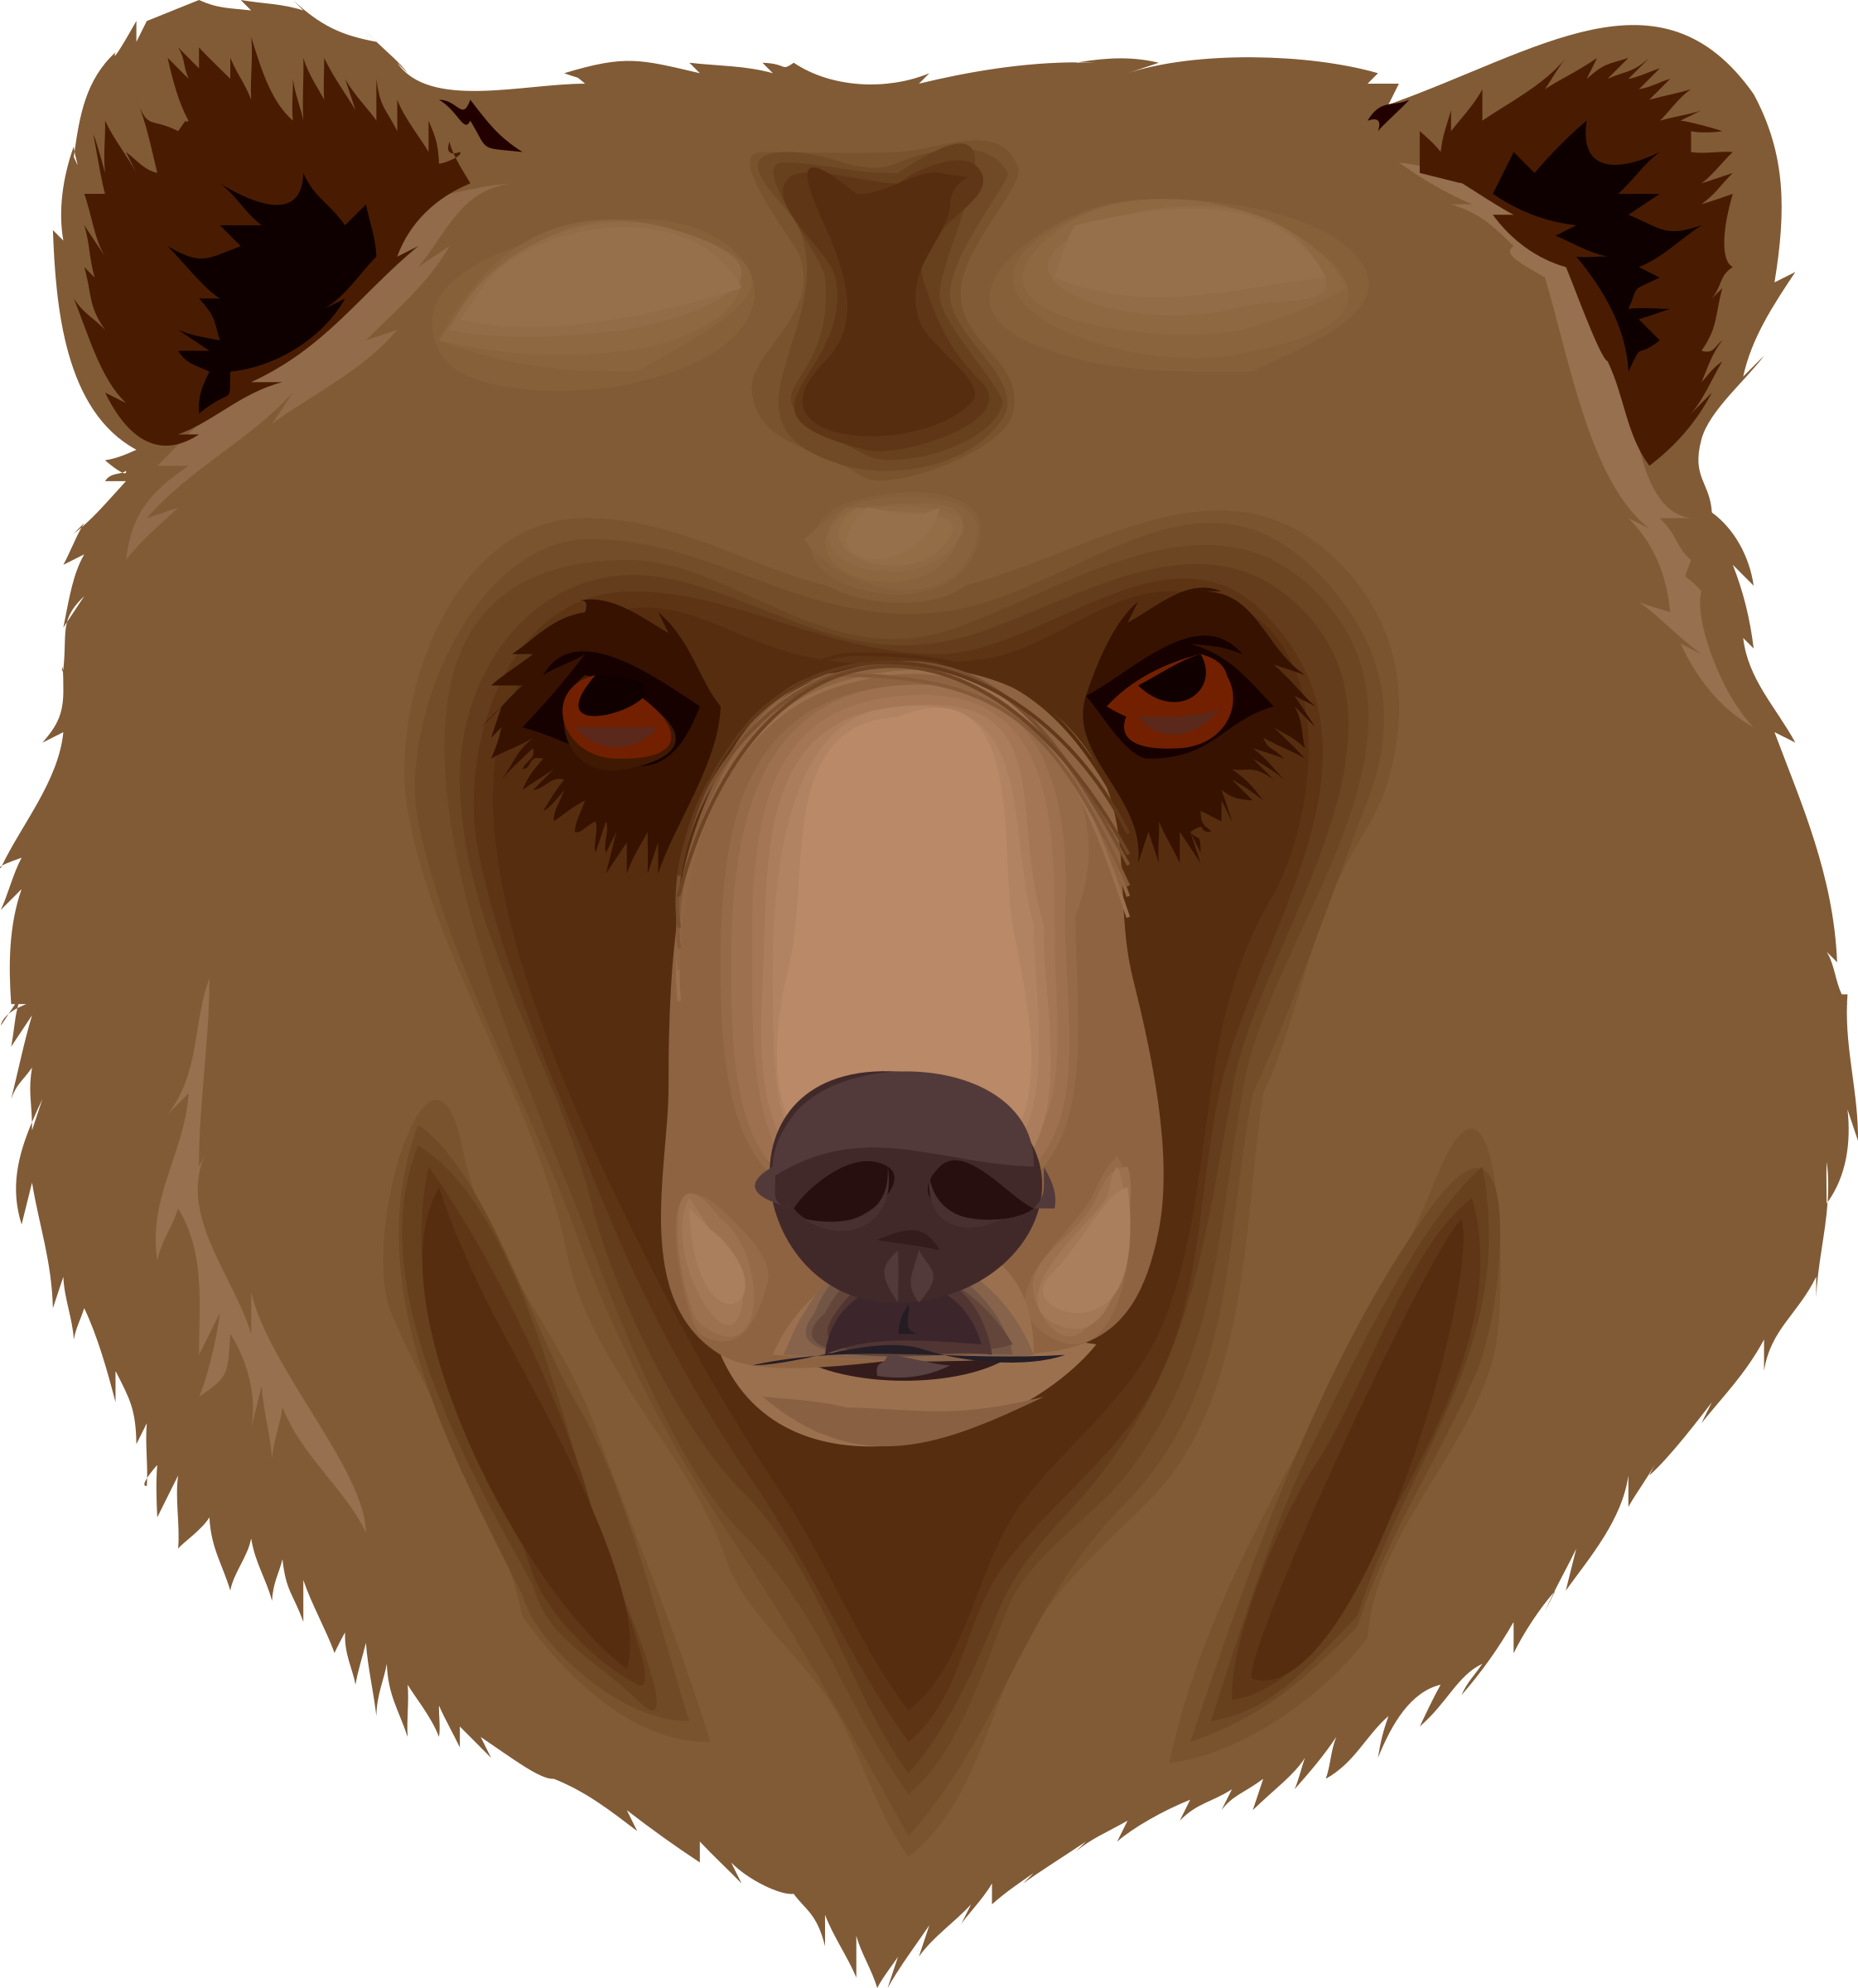 Architetto orso 16 Grizzly Bear by francesco_rollandin